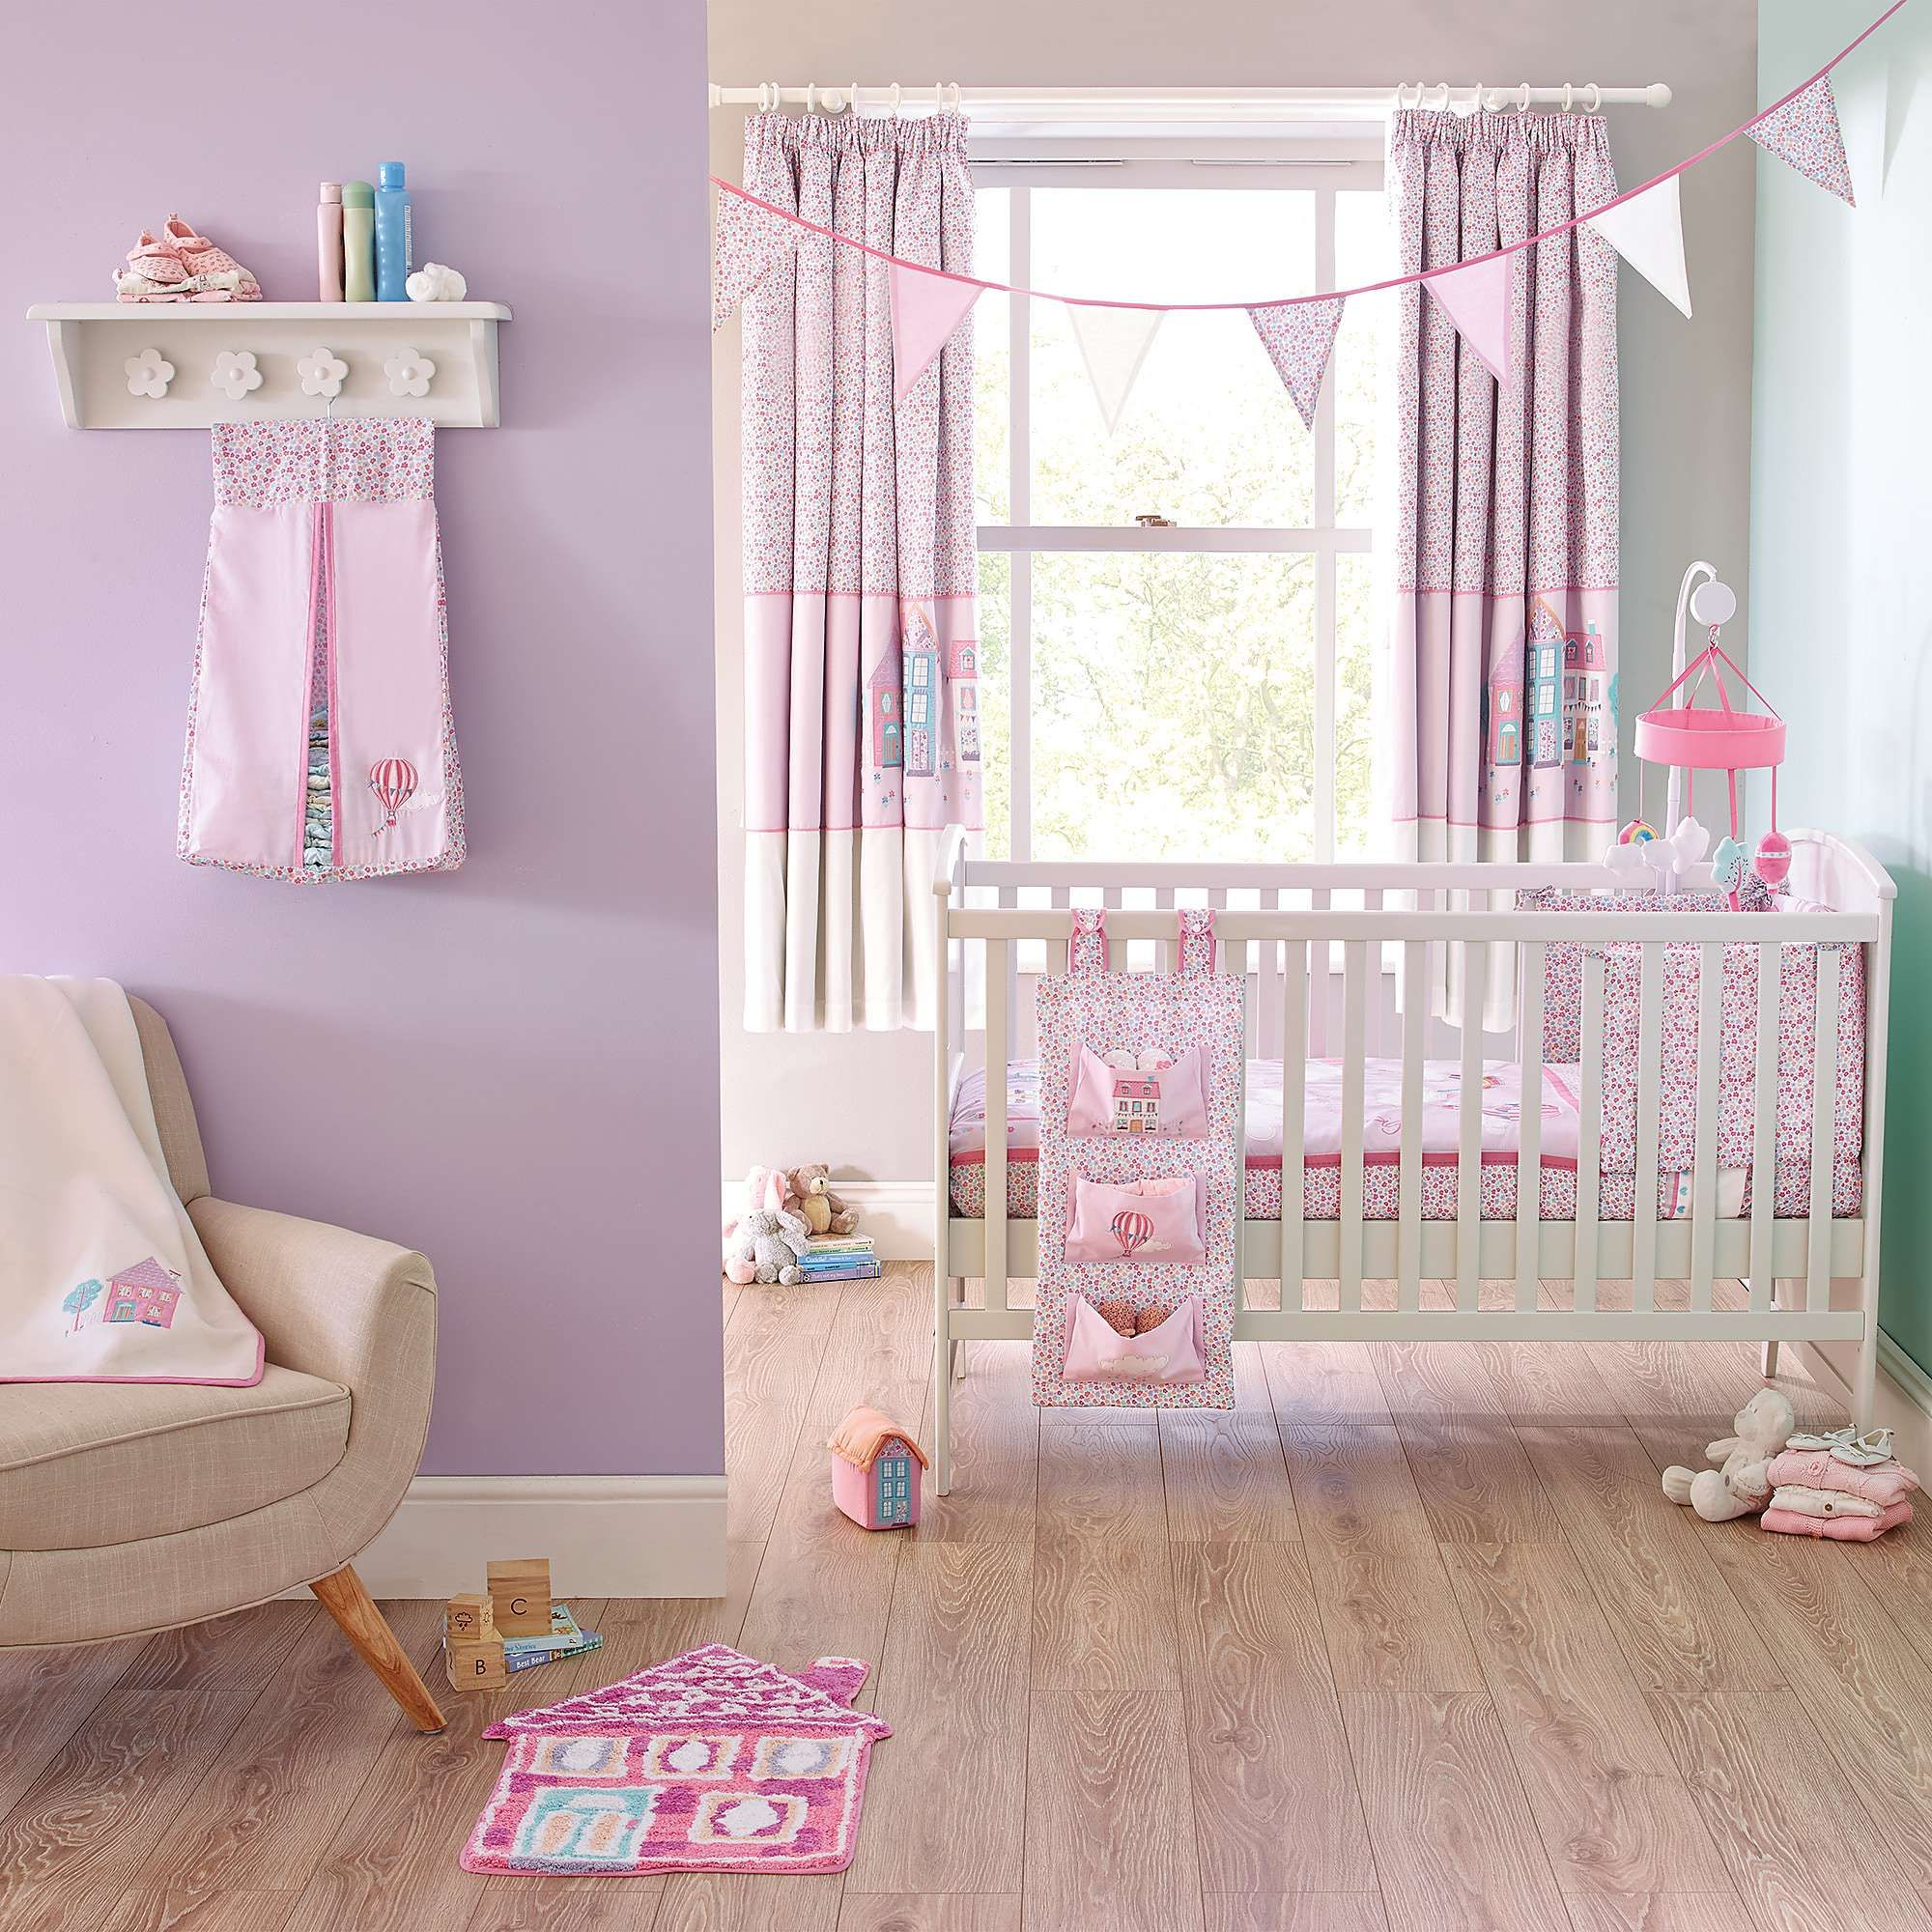 Up and Away Nursery Blackout Pencil Pleat Curtains | Dunelm ...